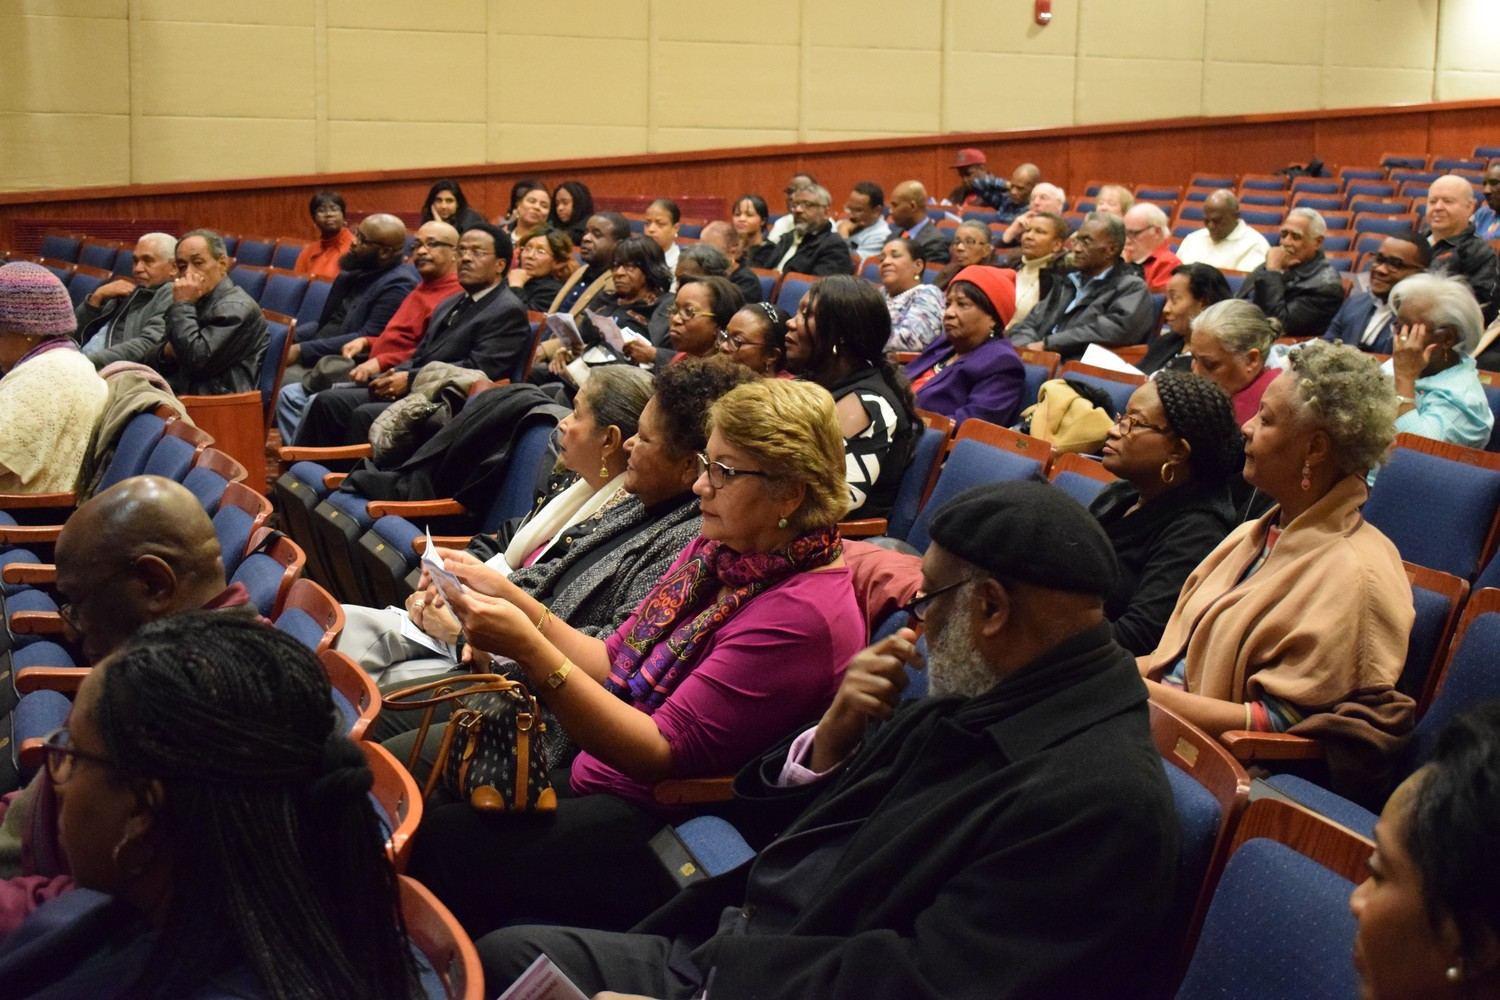 Nassau County residents gathered at the Elmont Memorial Library in February to discuss ways to help Haiti. A recent Department of Homeland Security report, the details of which were obtained through a Freedom of Information request, spoke of persistent hunger and poverty in the Caribbean nation.